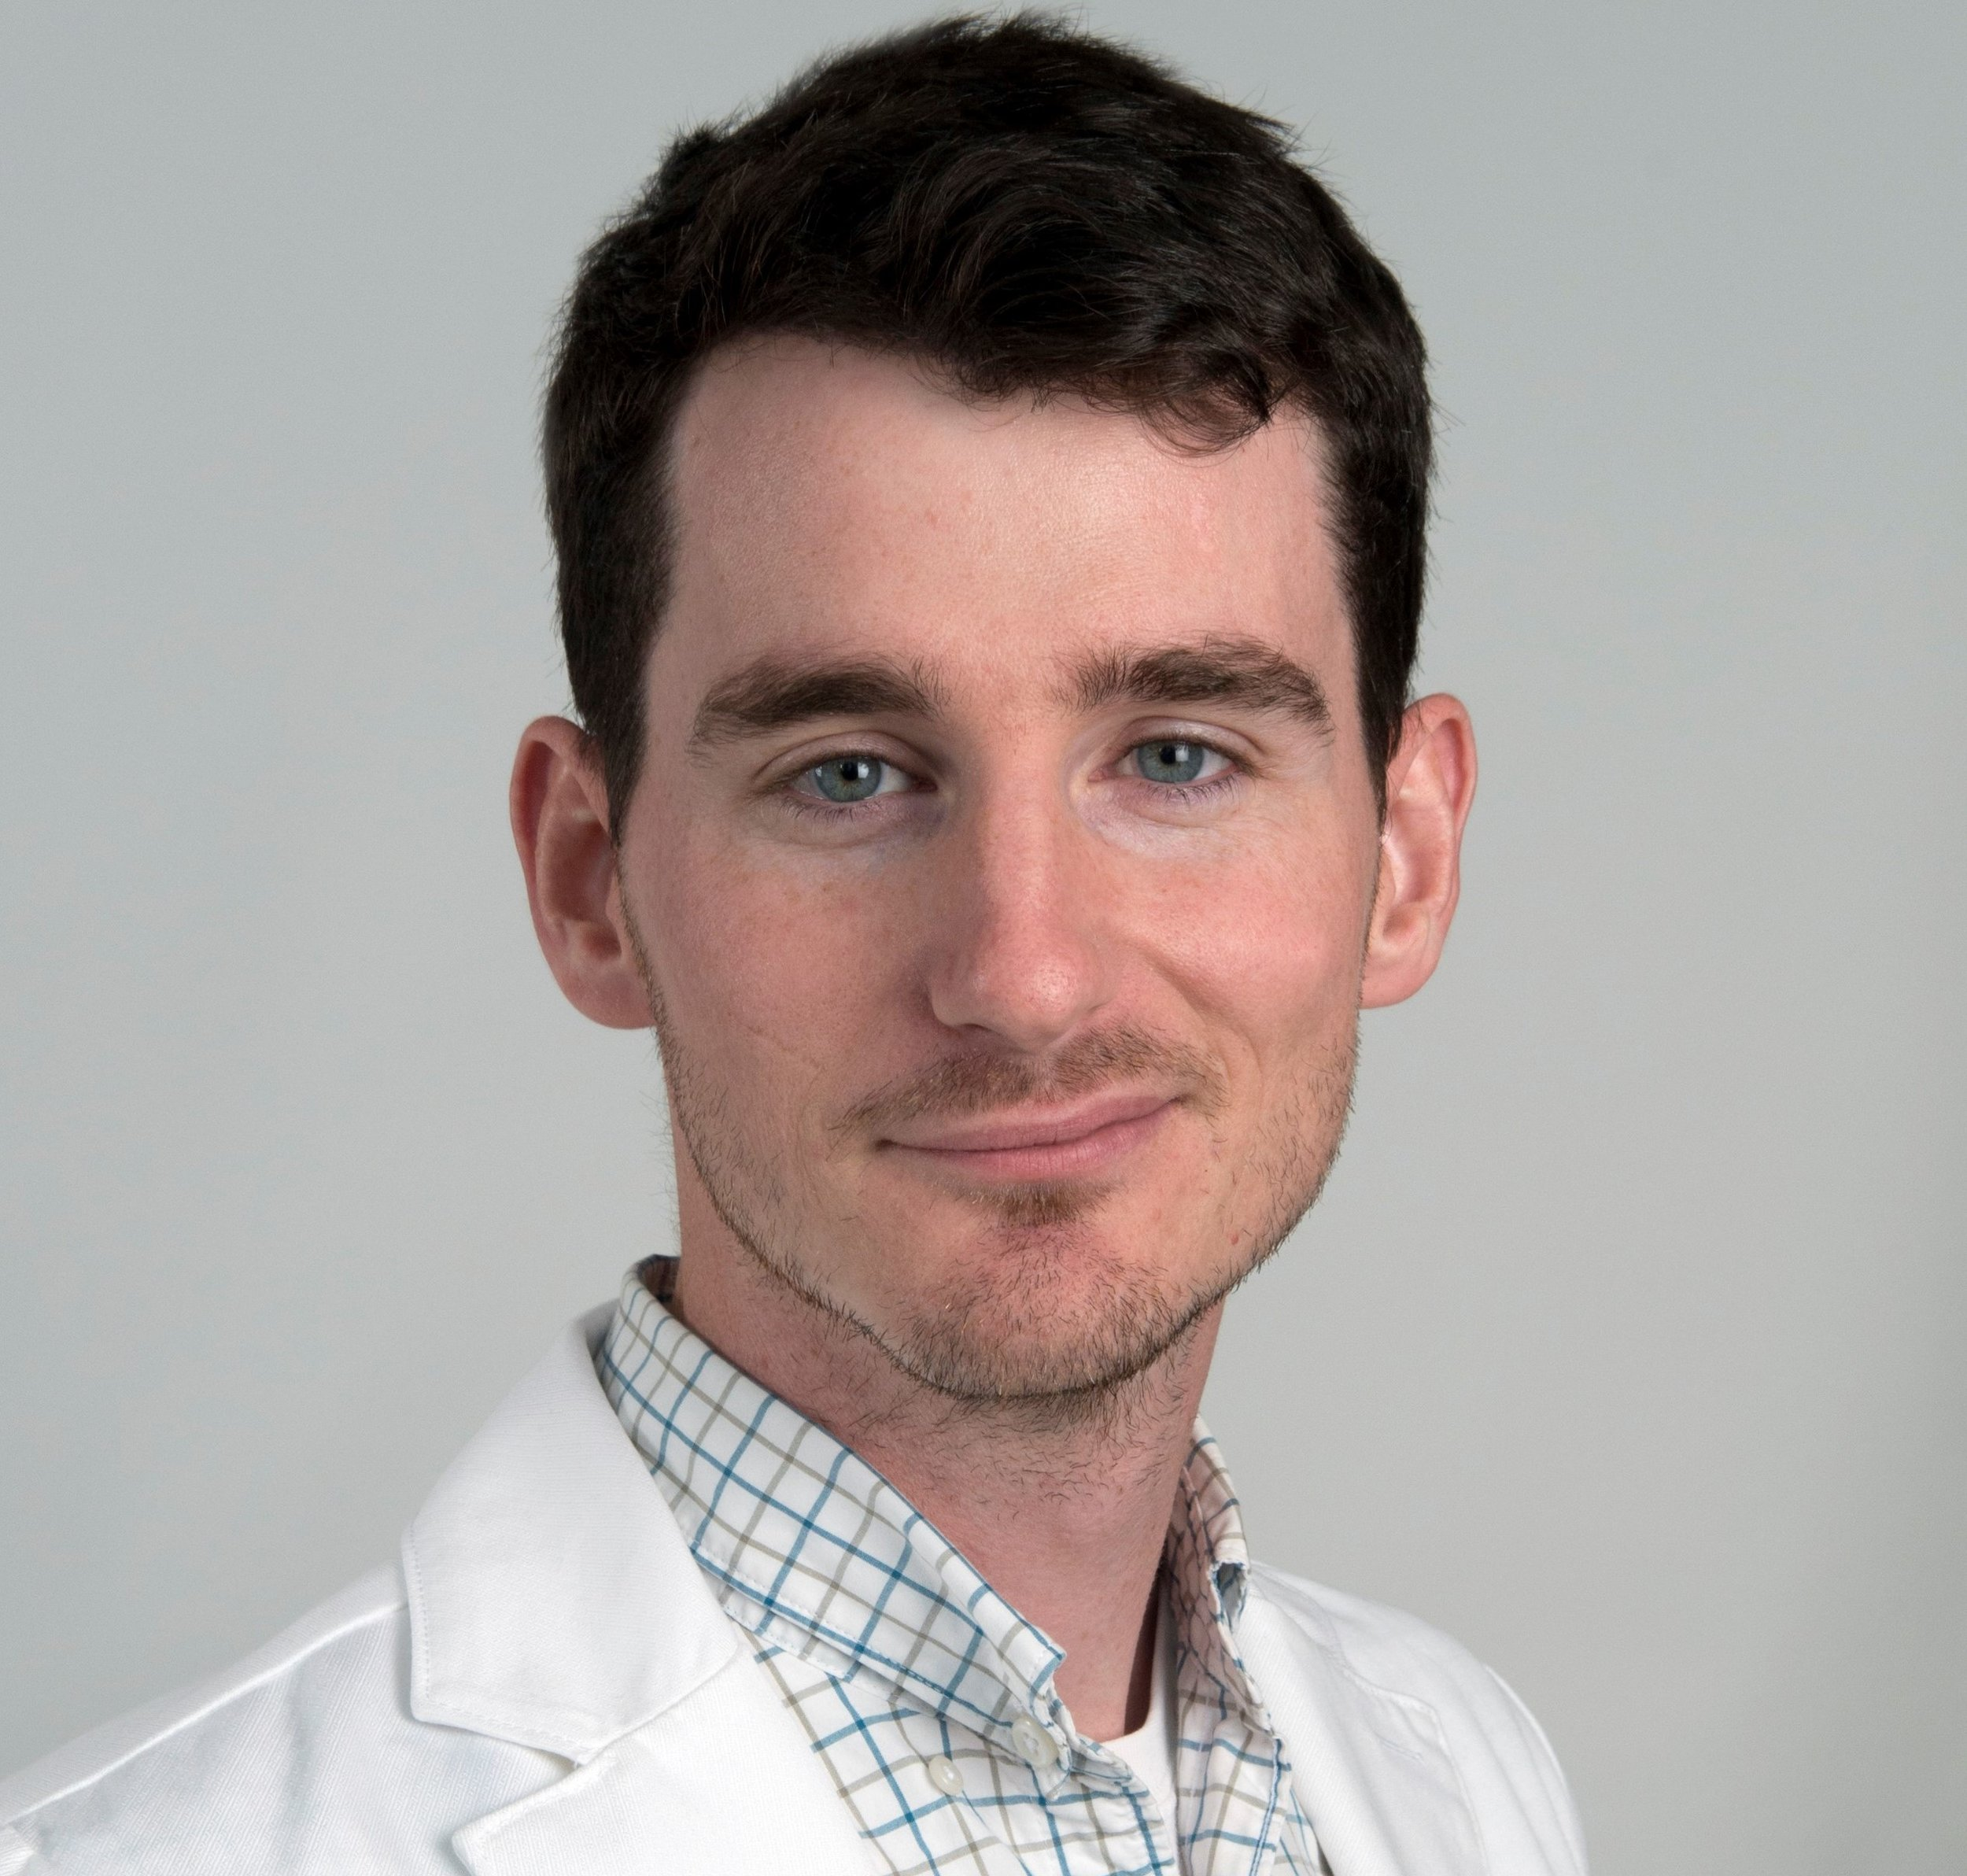 - Christopher Bennett, MD, MABoard of Directors, Society for Academic Emergency MedicineResident Physician, Harvard Emergency Medicine (MGH/BWH)Twitter: @cleebennett